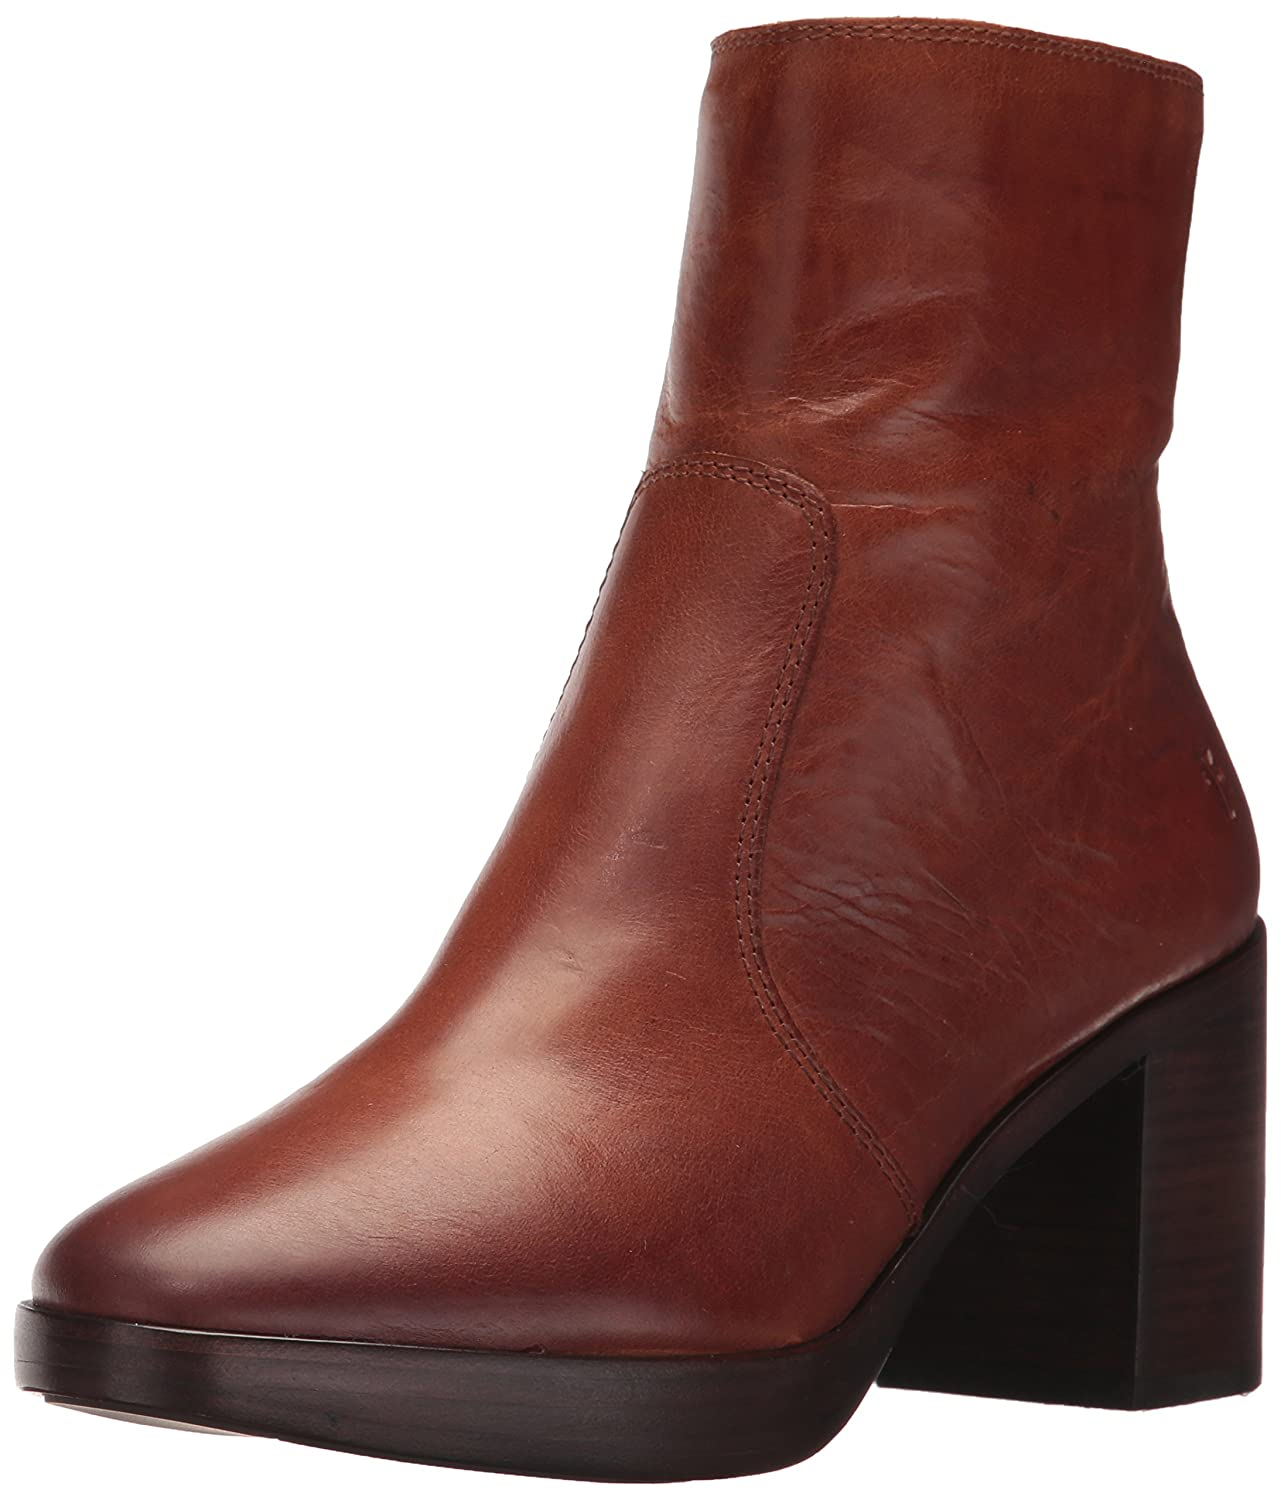 FRYE Women's Joan Campus Short Boot B01NCRVW0O 5.5 B(M) US|Redwood Smooth Antique Pull Up